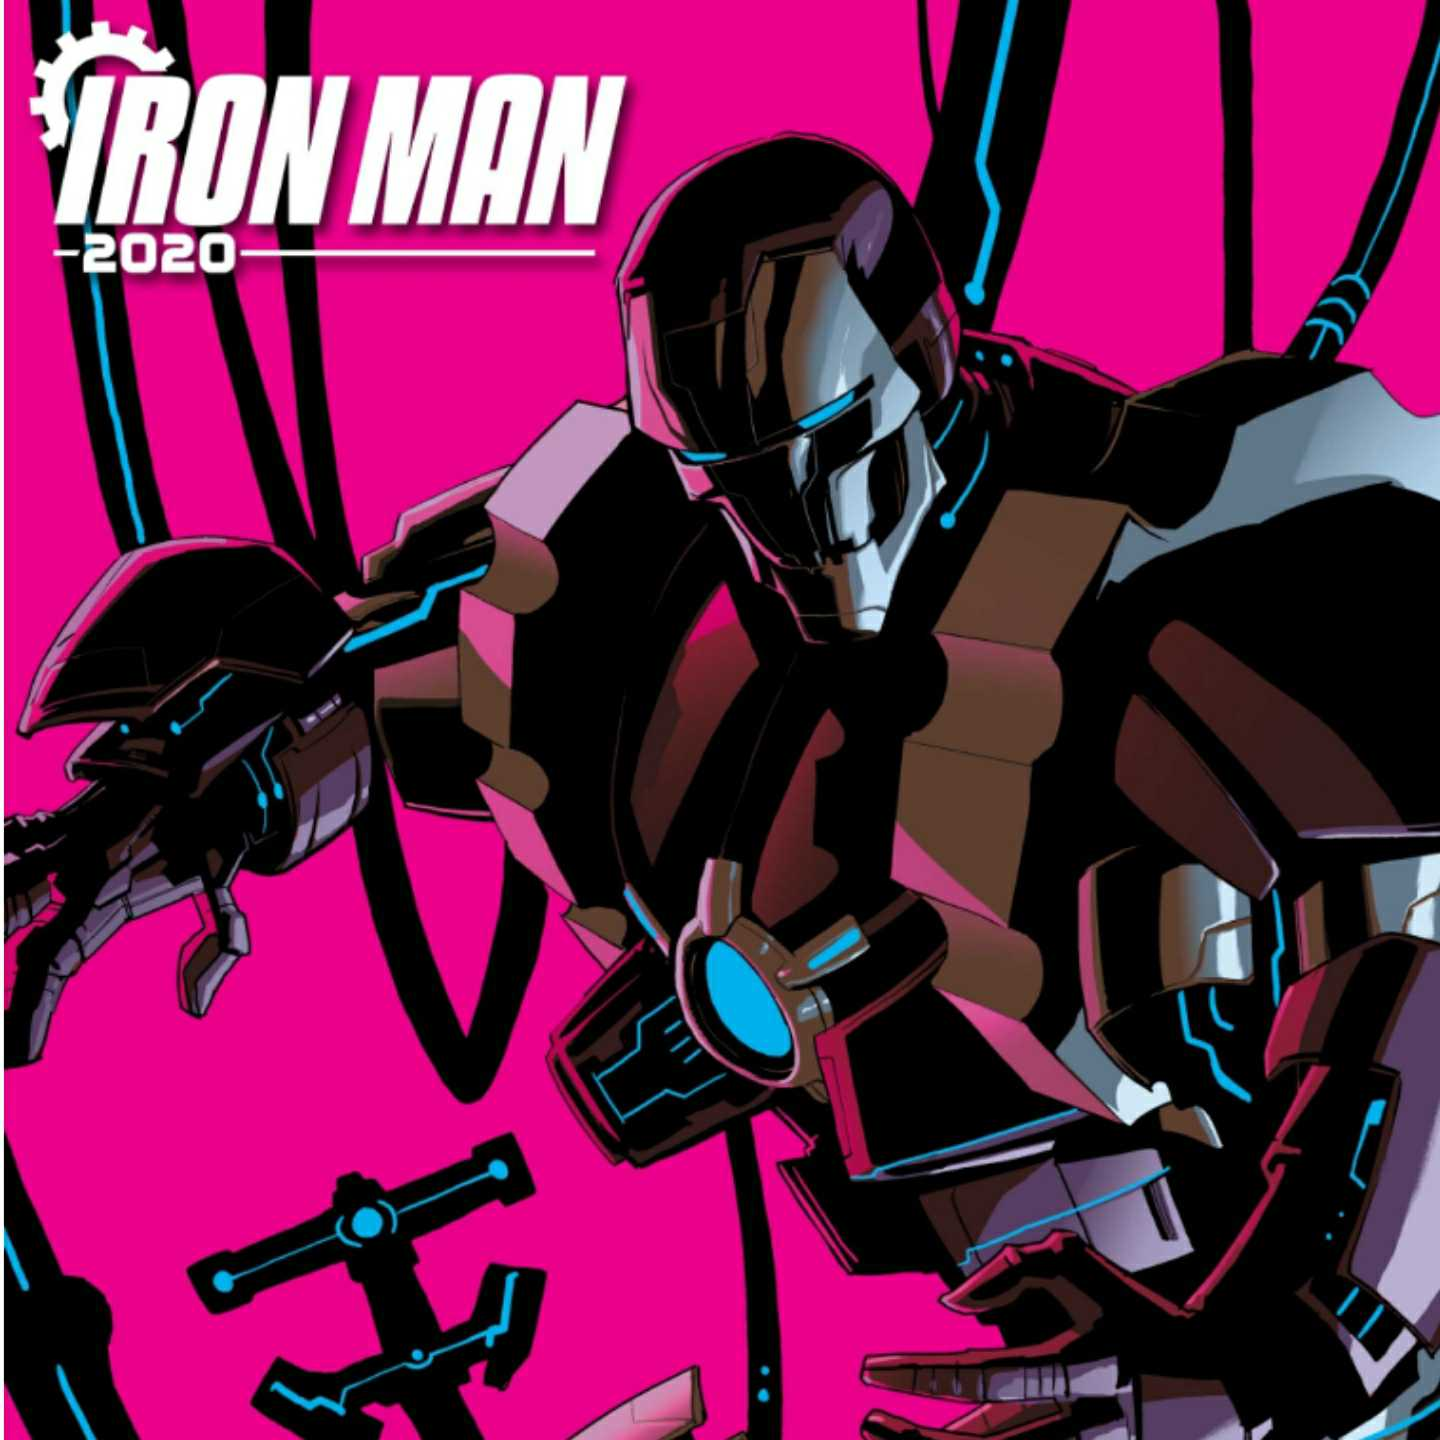 Iron Man, Marvel, 360 MAGAZINE